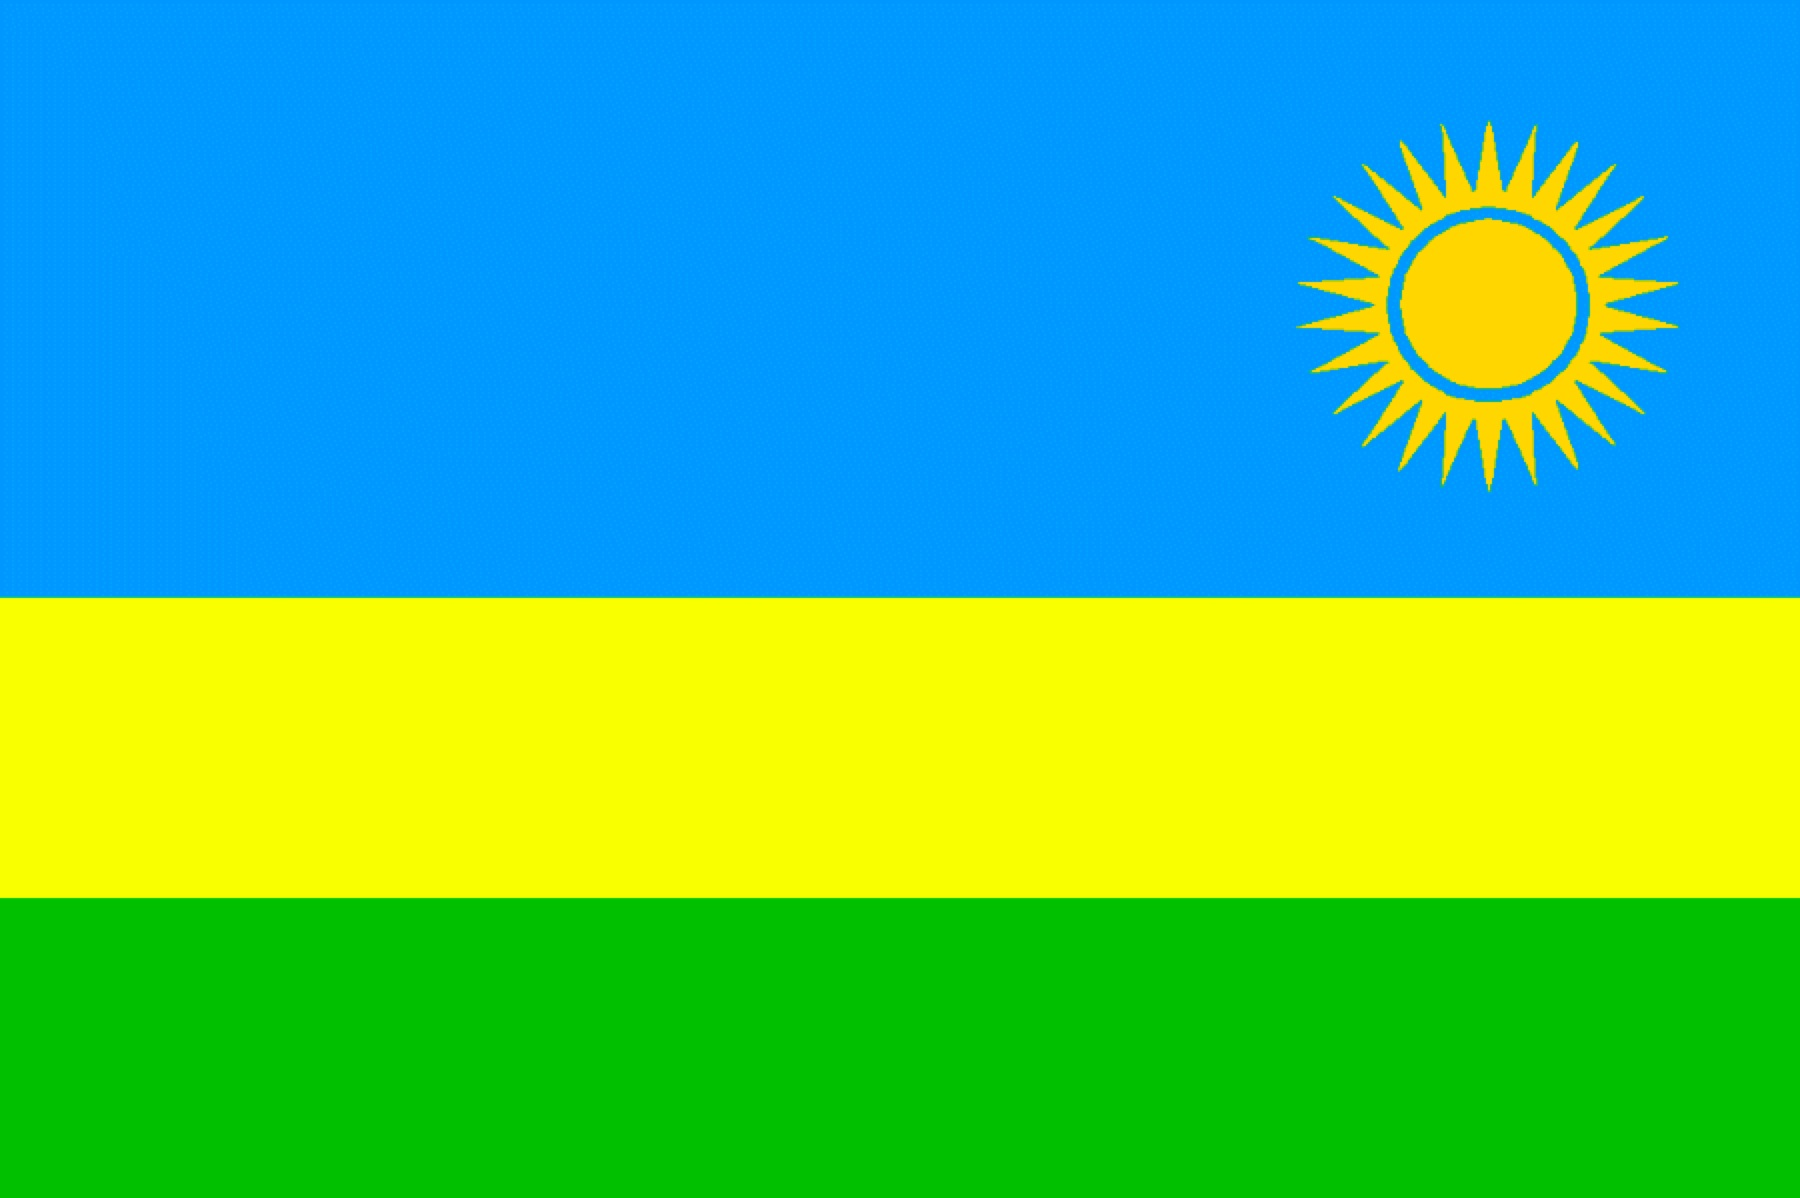 Rwanda Countries Flag Wallpaper Desktop 3994   Ongur 1800x1198